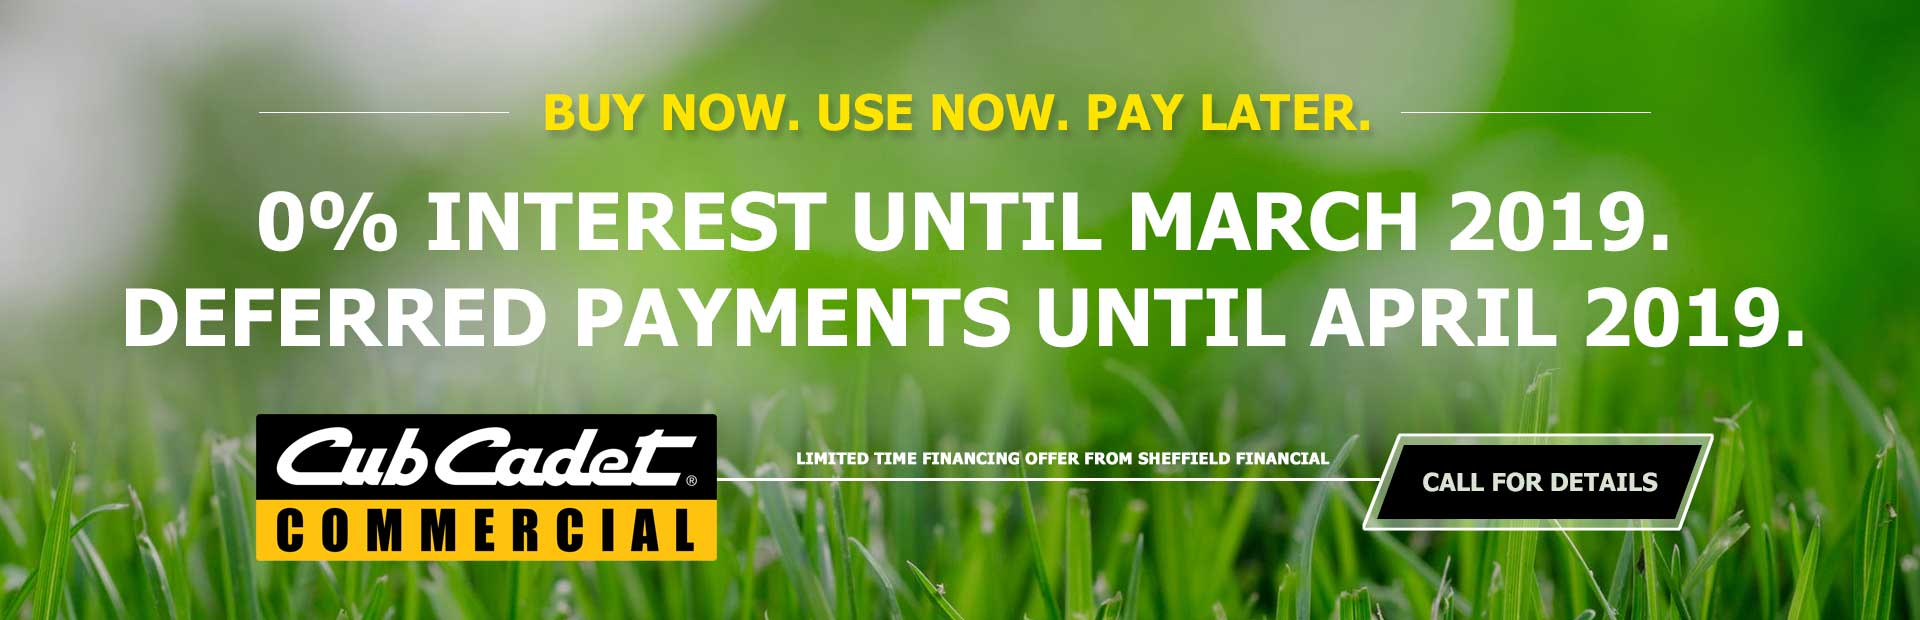 0% Interest Financing Offer